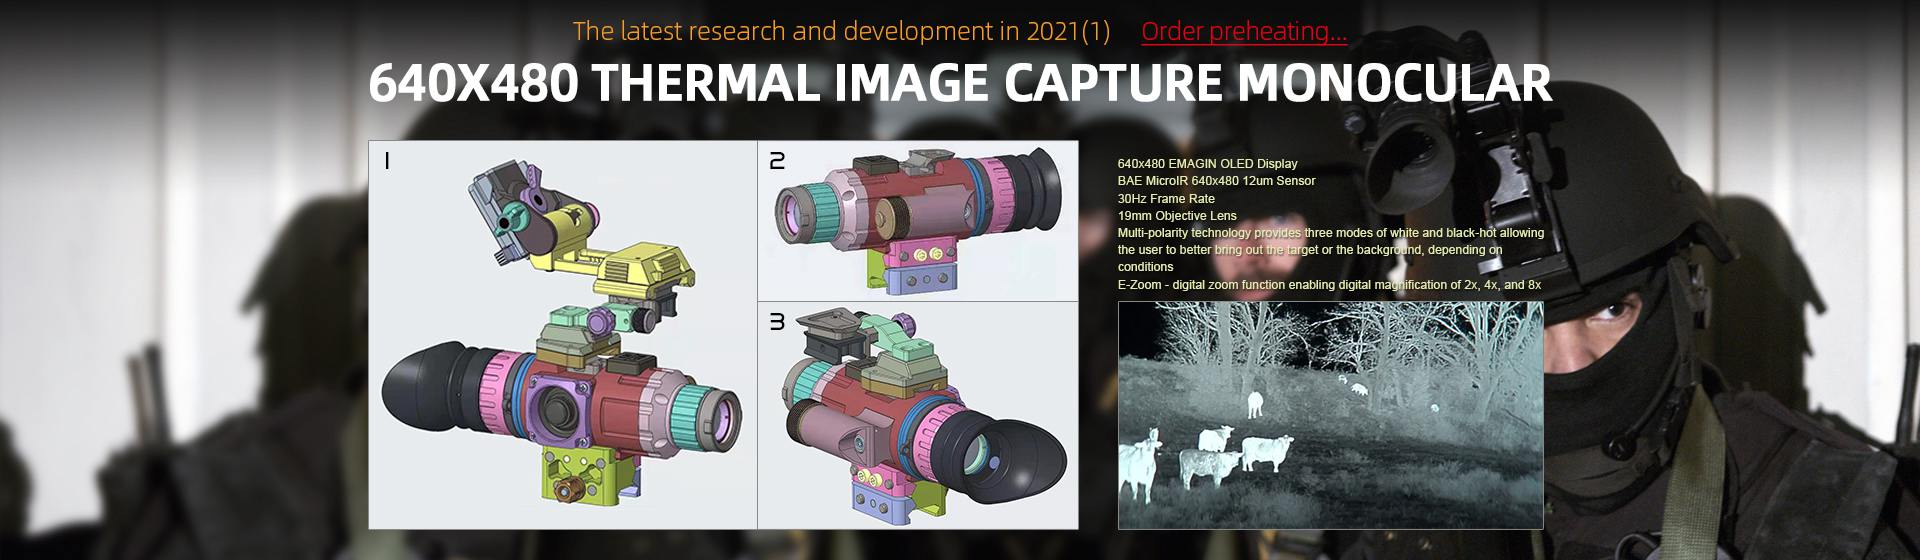 THERMAL IMAGE CAPTURE MONOCULAR